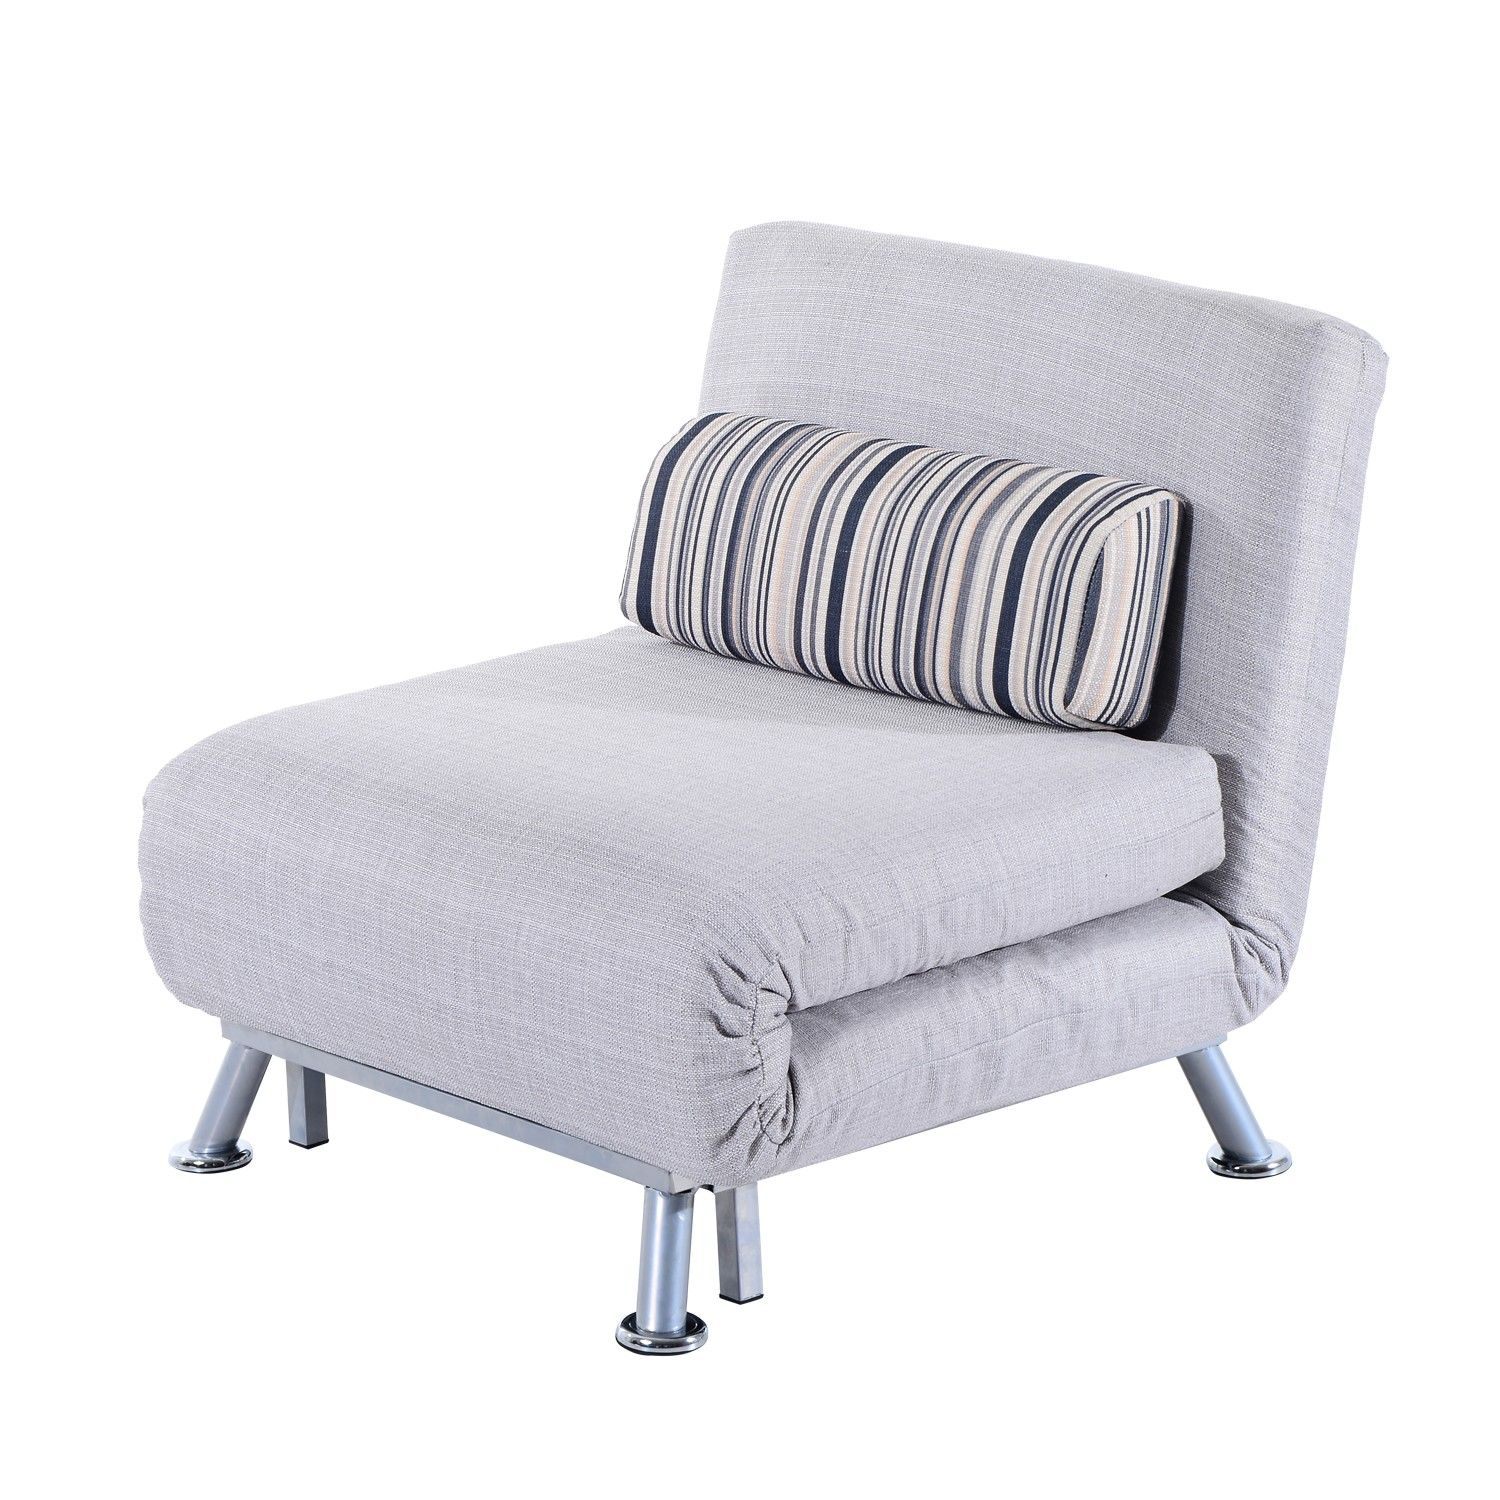 Awe Inspiring Homcom Foldable Futon Sofa Bed For 1 Person Grey In 2019 Creativecarmelina Interior Chair Design Creativecarmelinacom